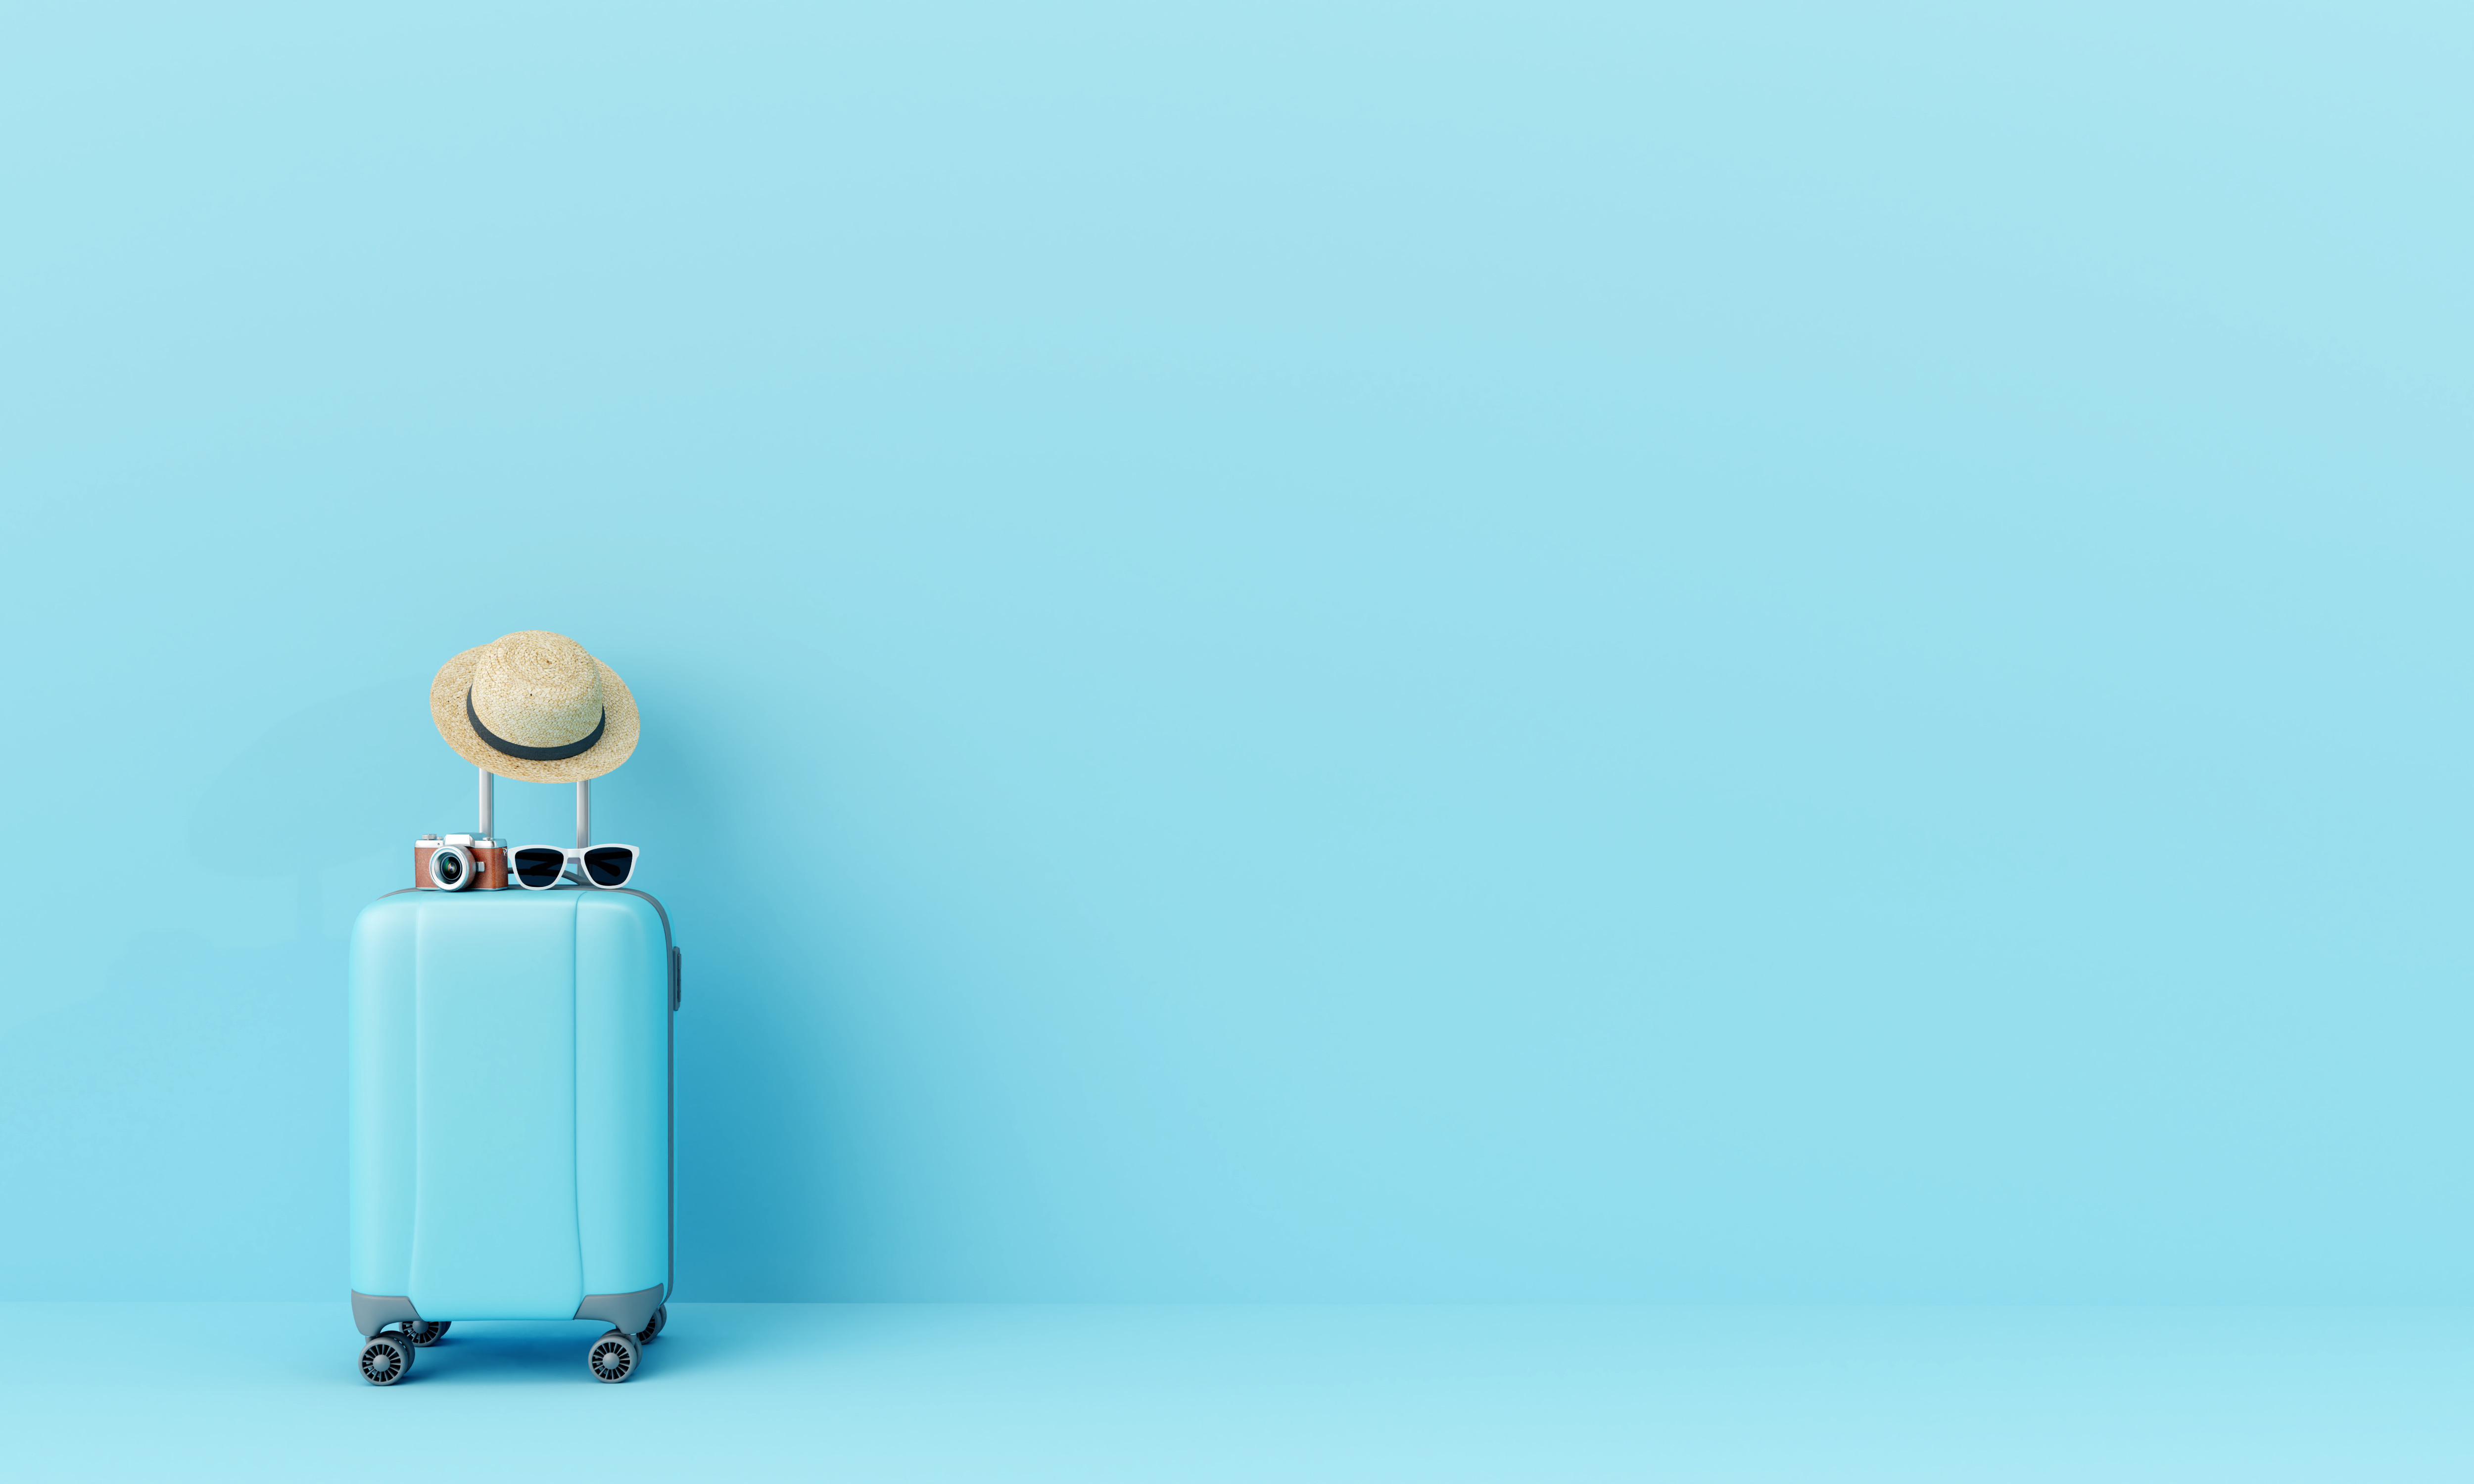 Blue suitcase and hat against a blue background